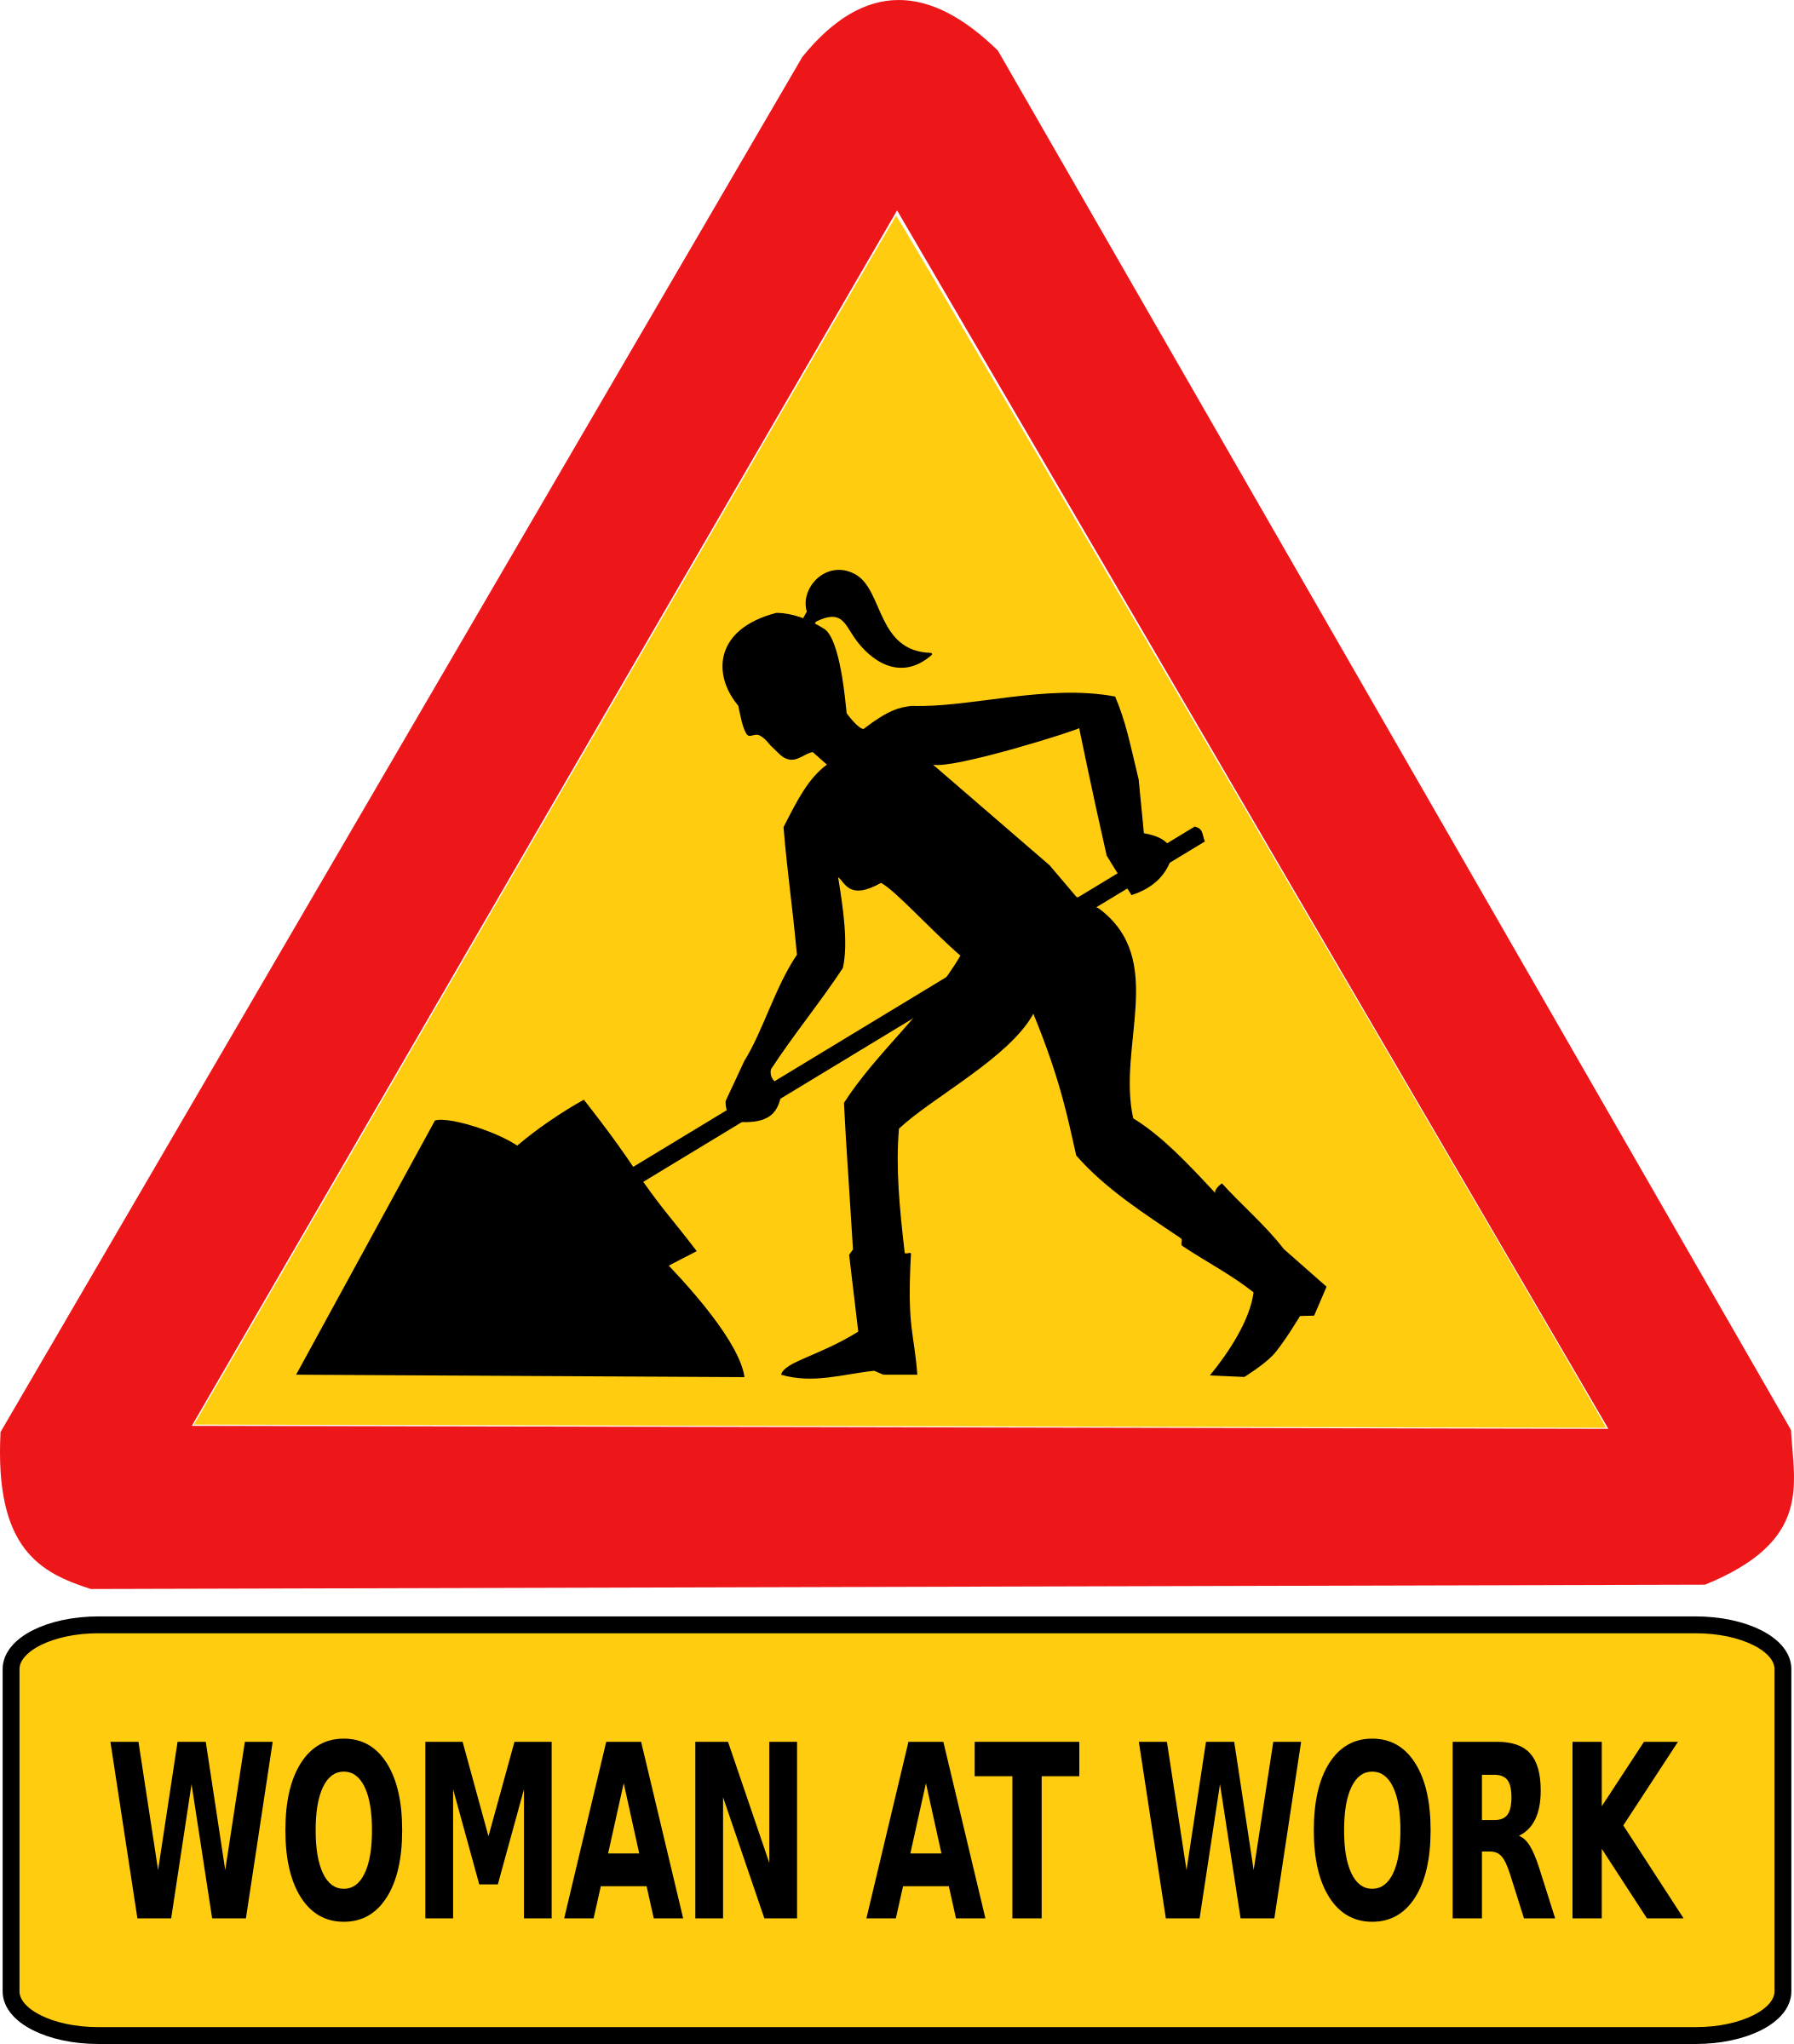 Working clipart woman. At work big image